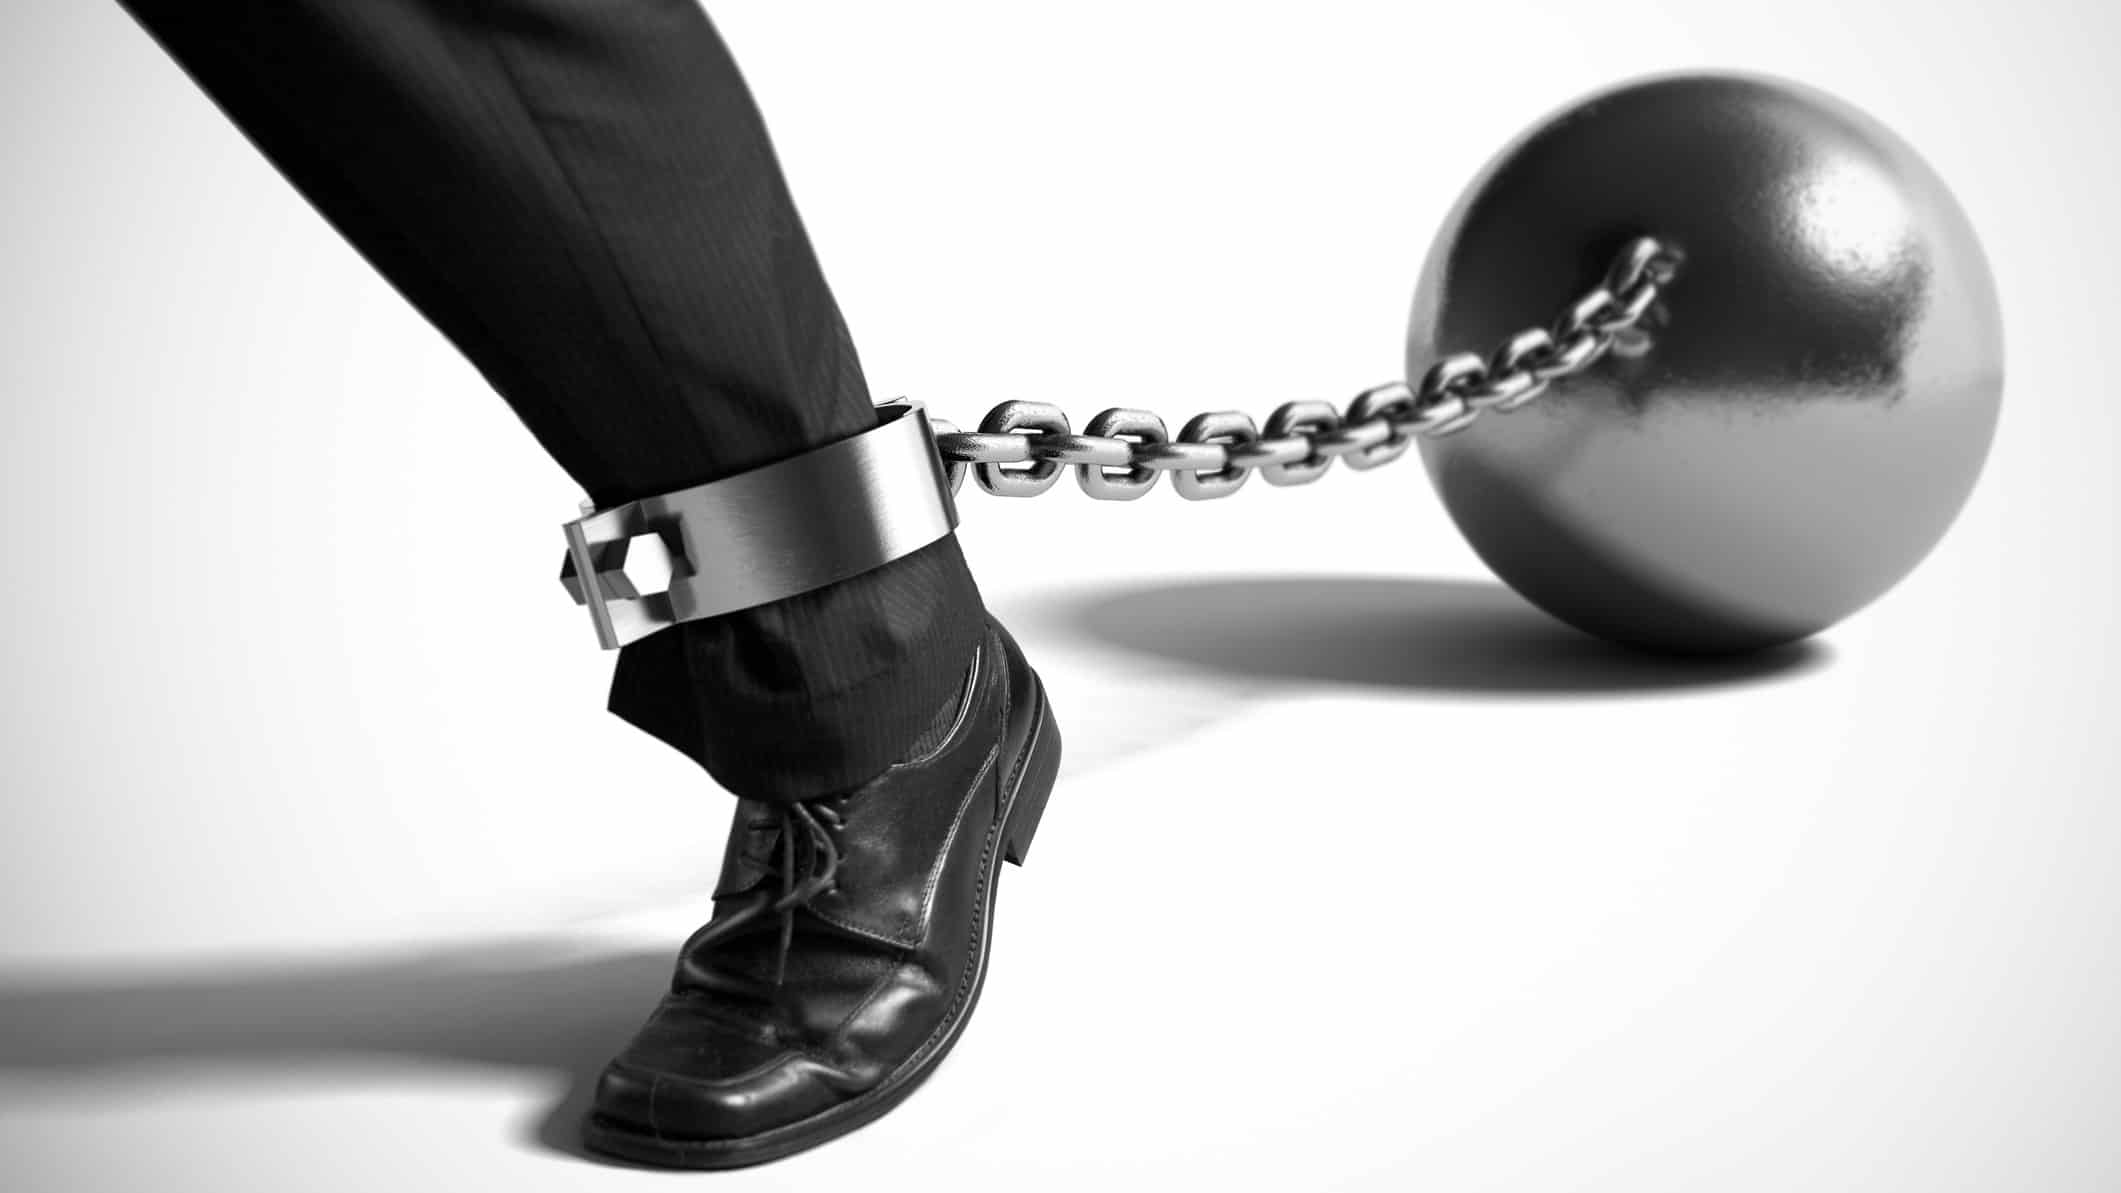 falling asx share price represented by invor's leg with ball and chain attached